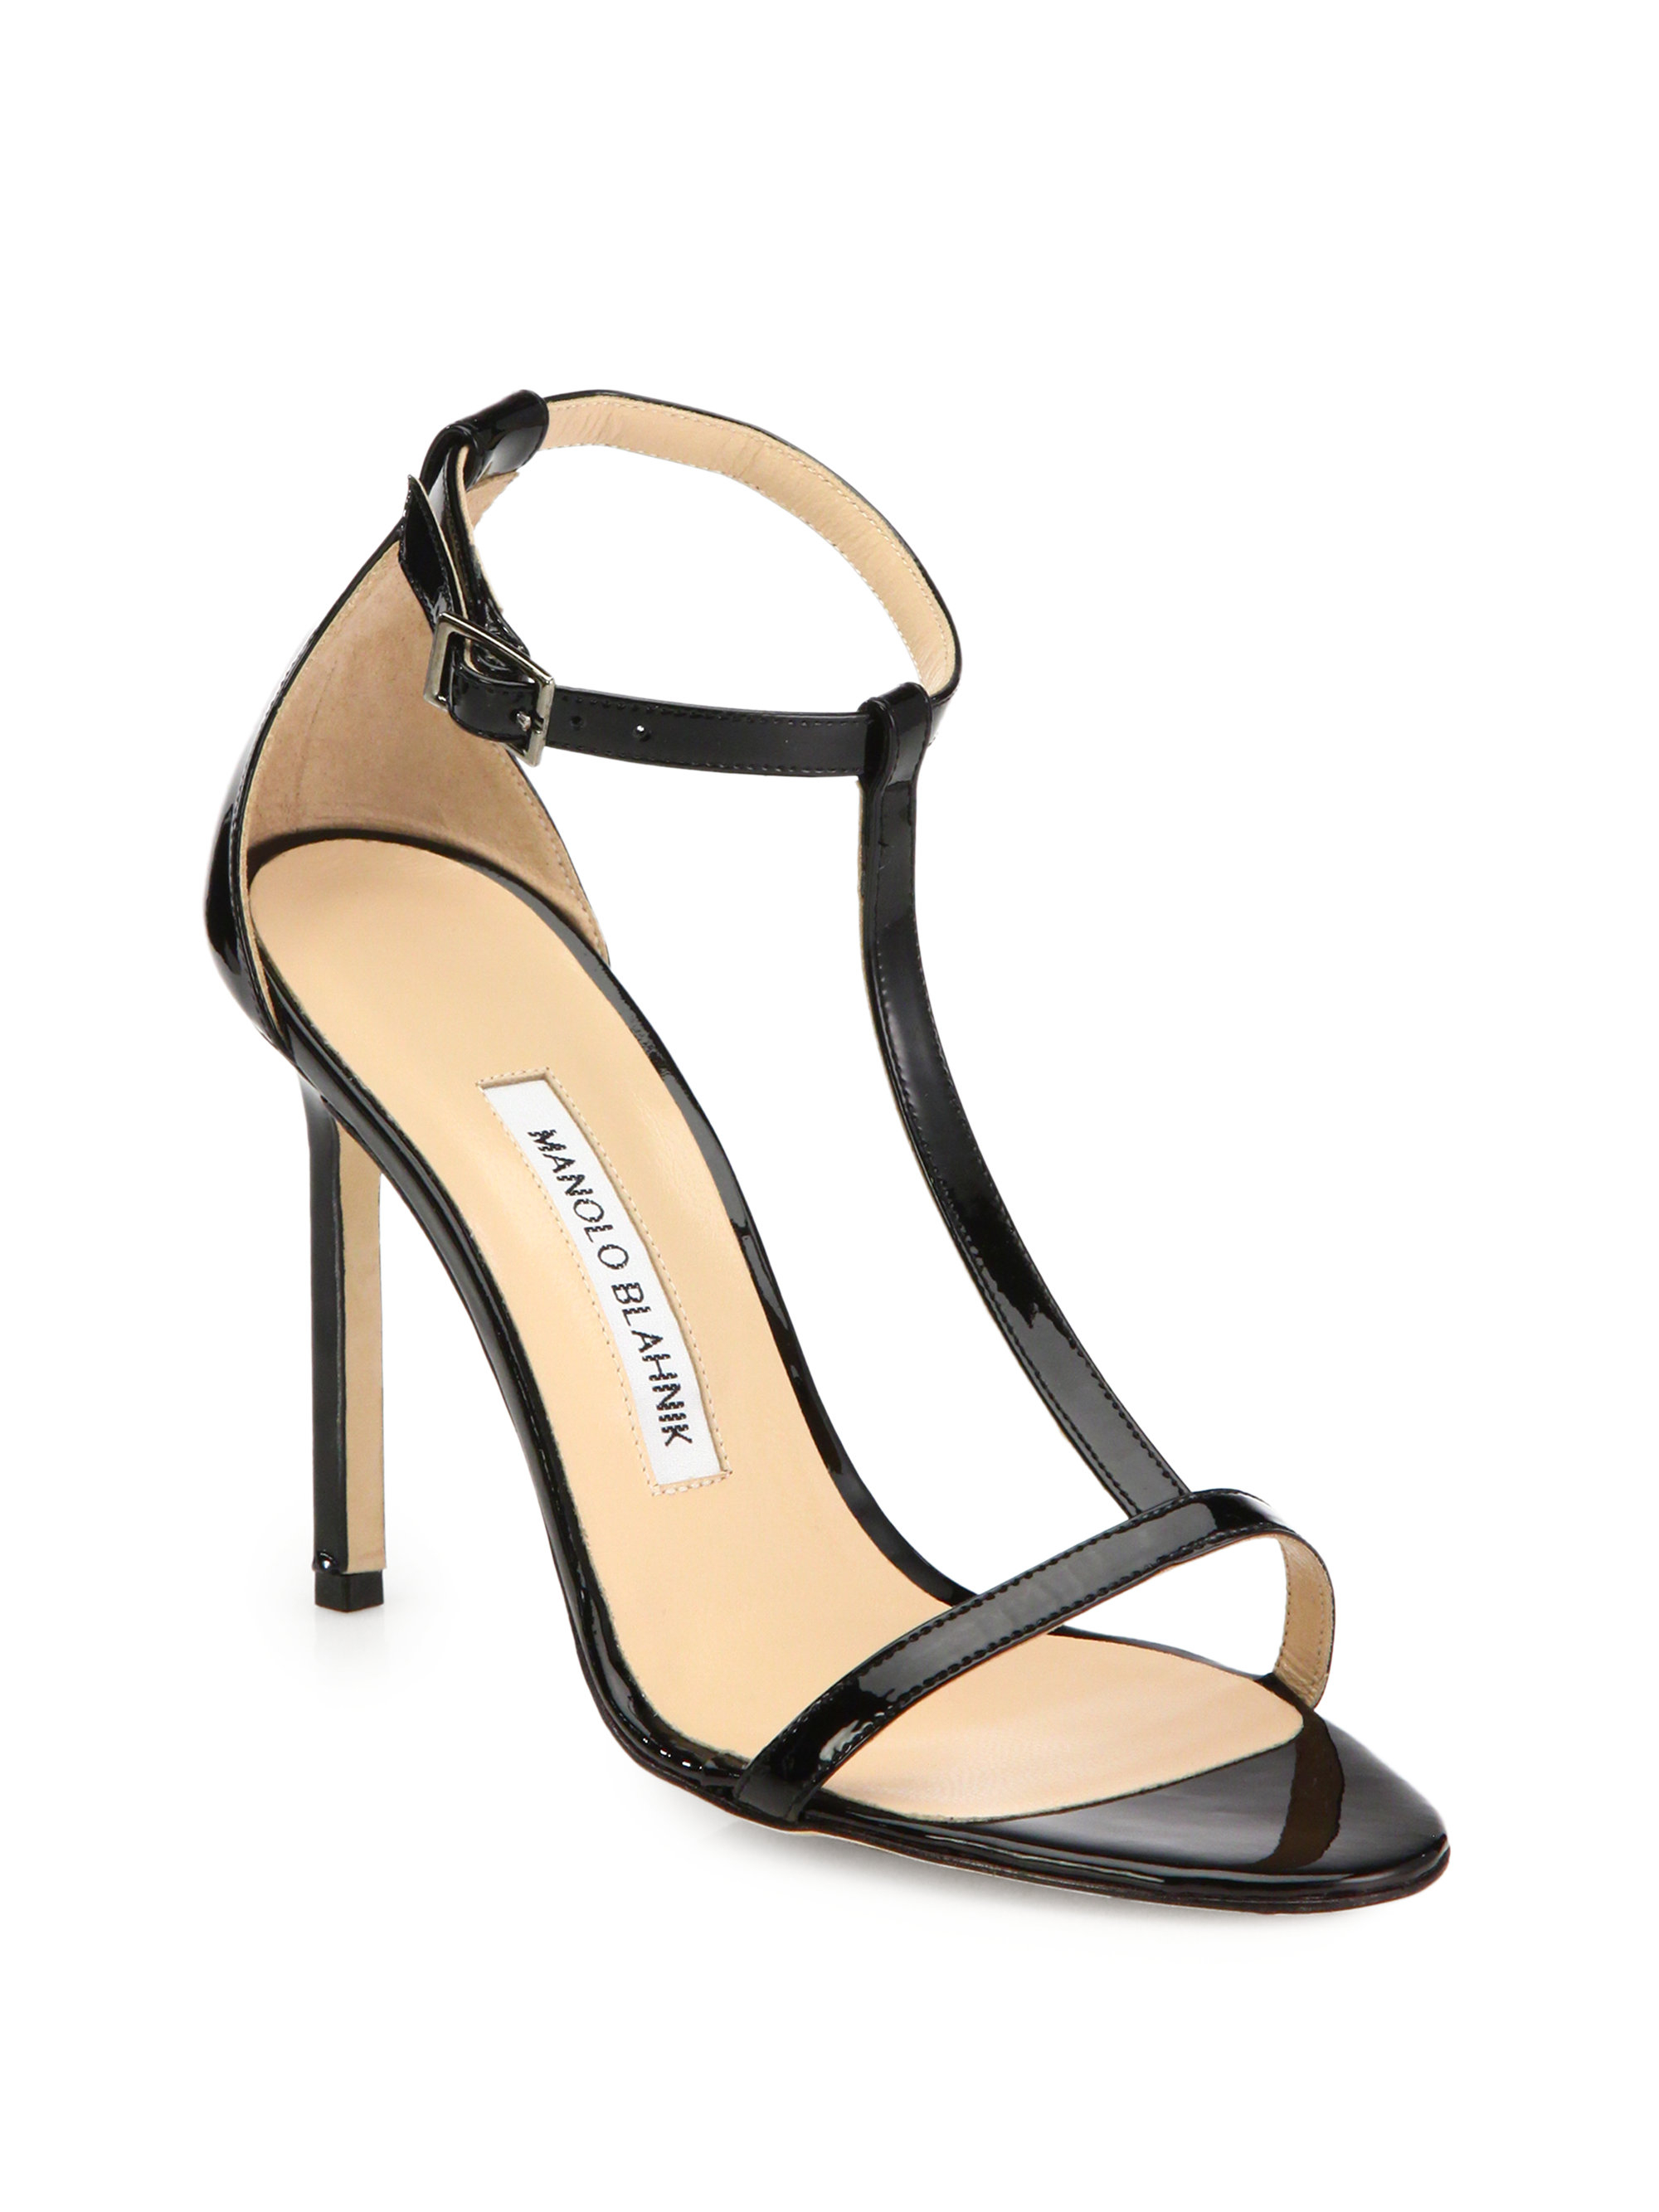 805d35e90e20 Lyst - Manolo Blahnik Spence Patent Leather T-Strap Sandals in Black